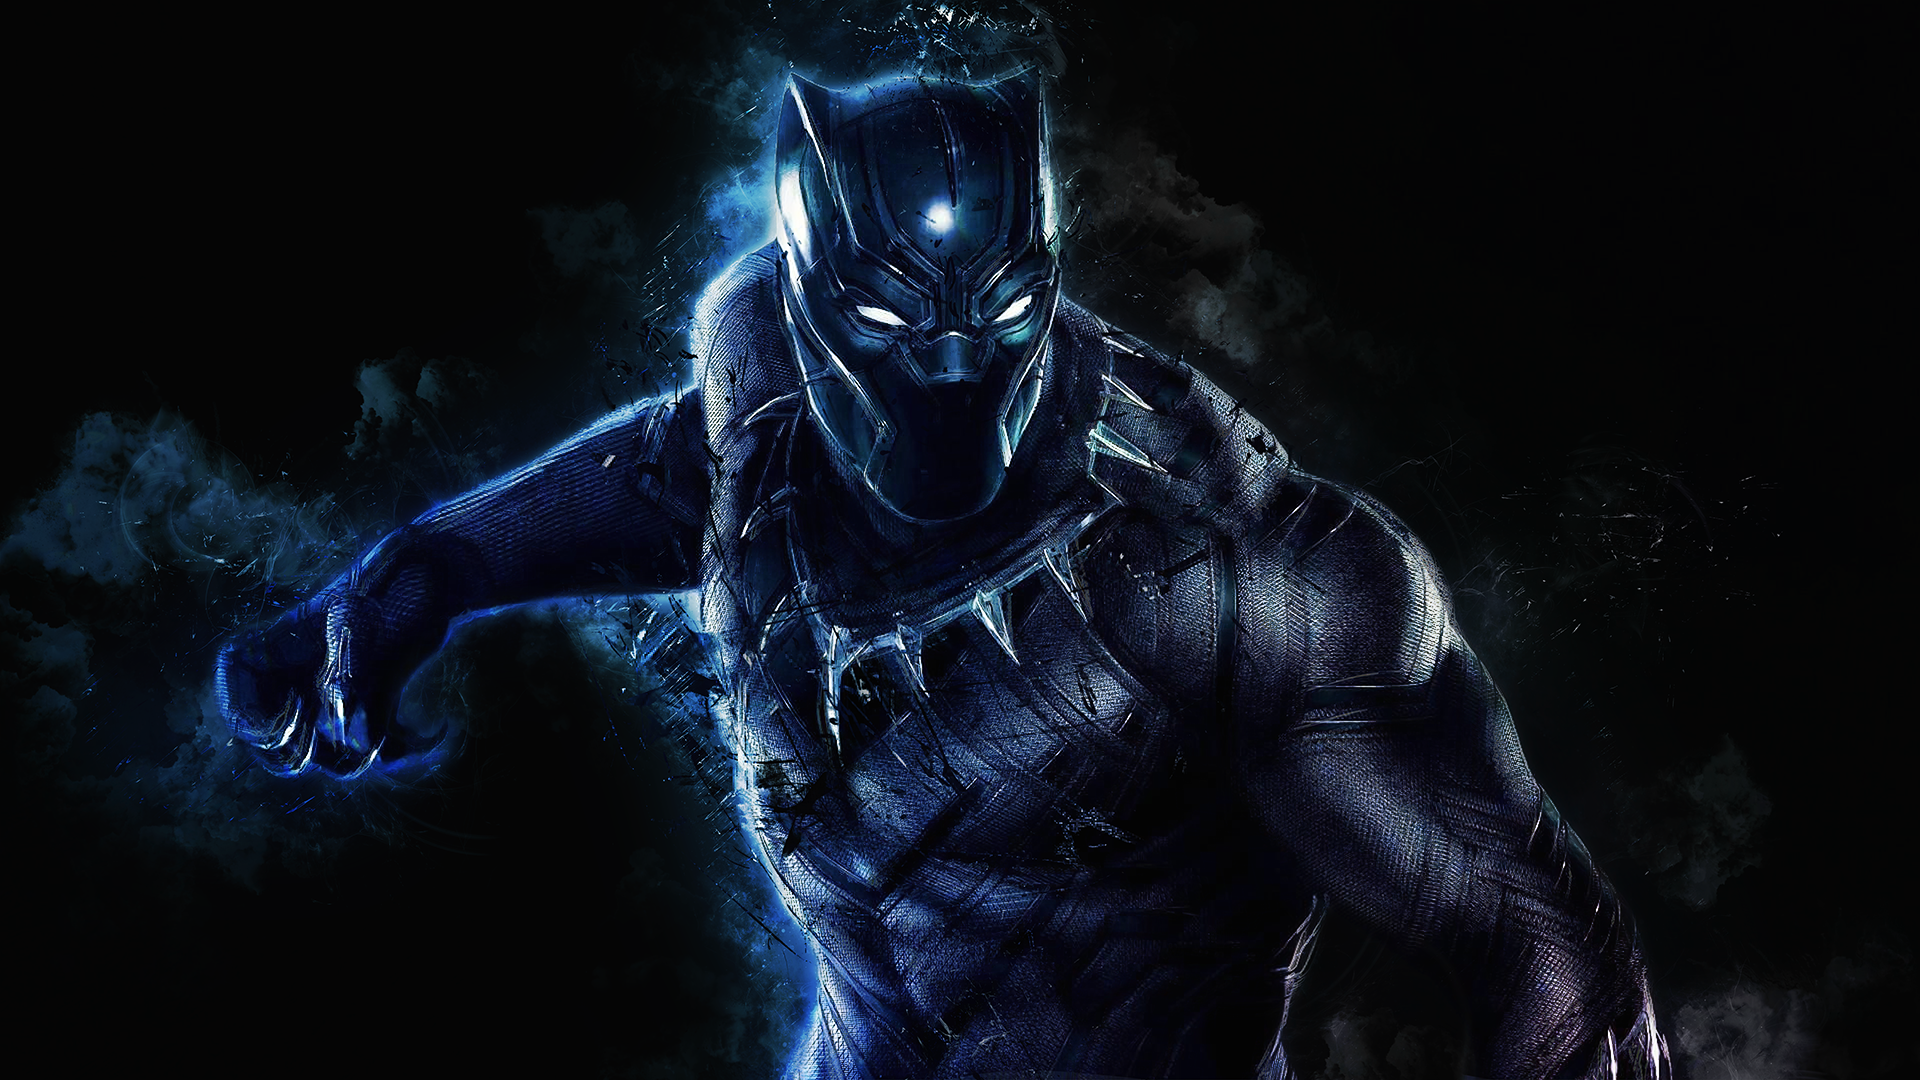 download black panther laptop wallpaper in uhd 4k 0047